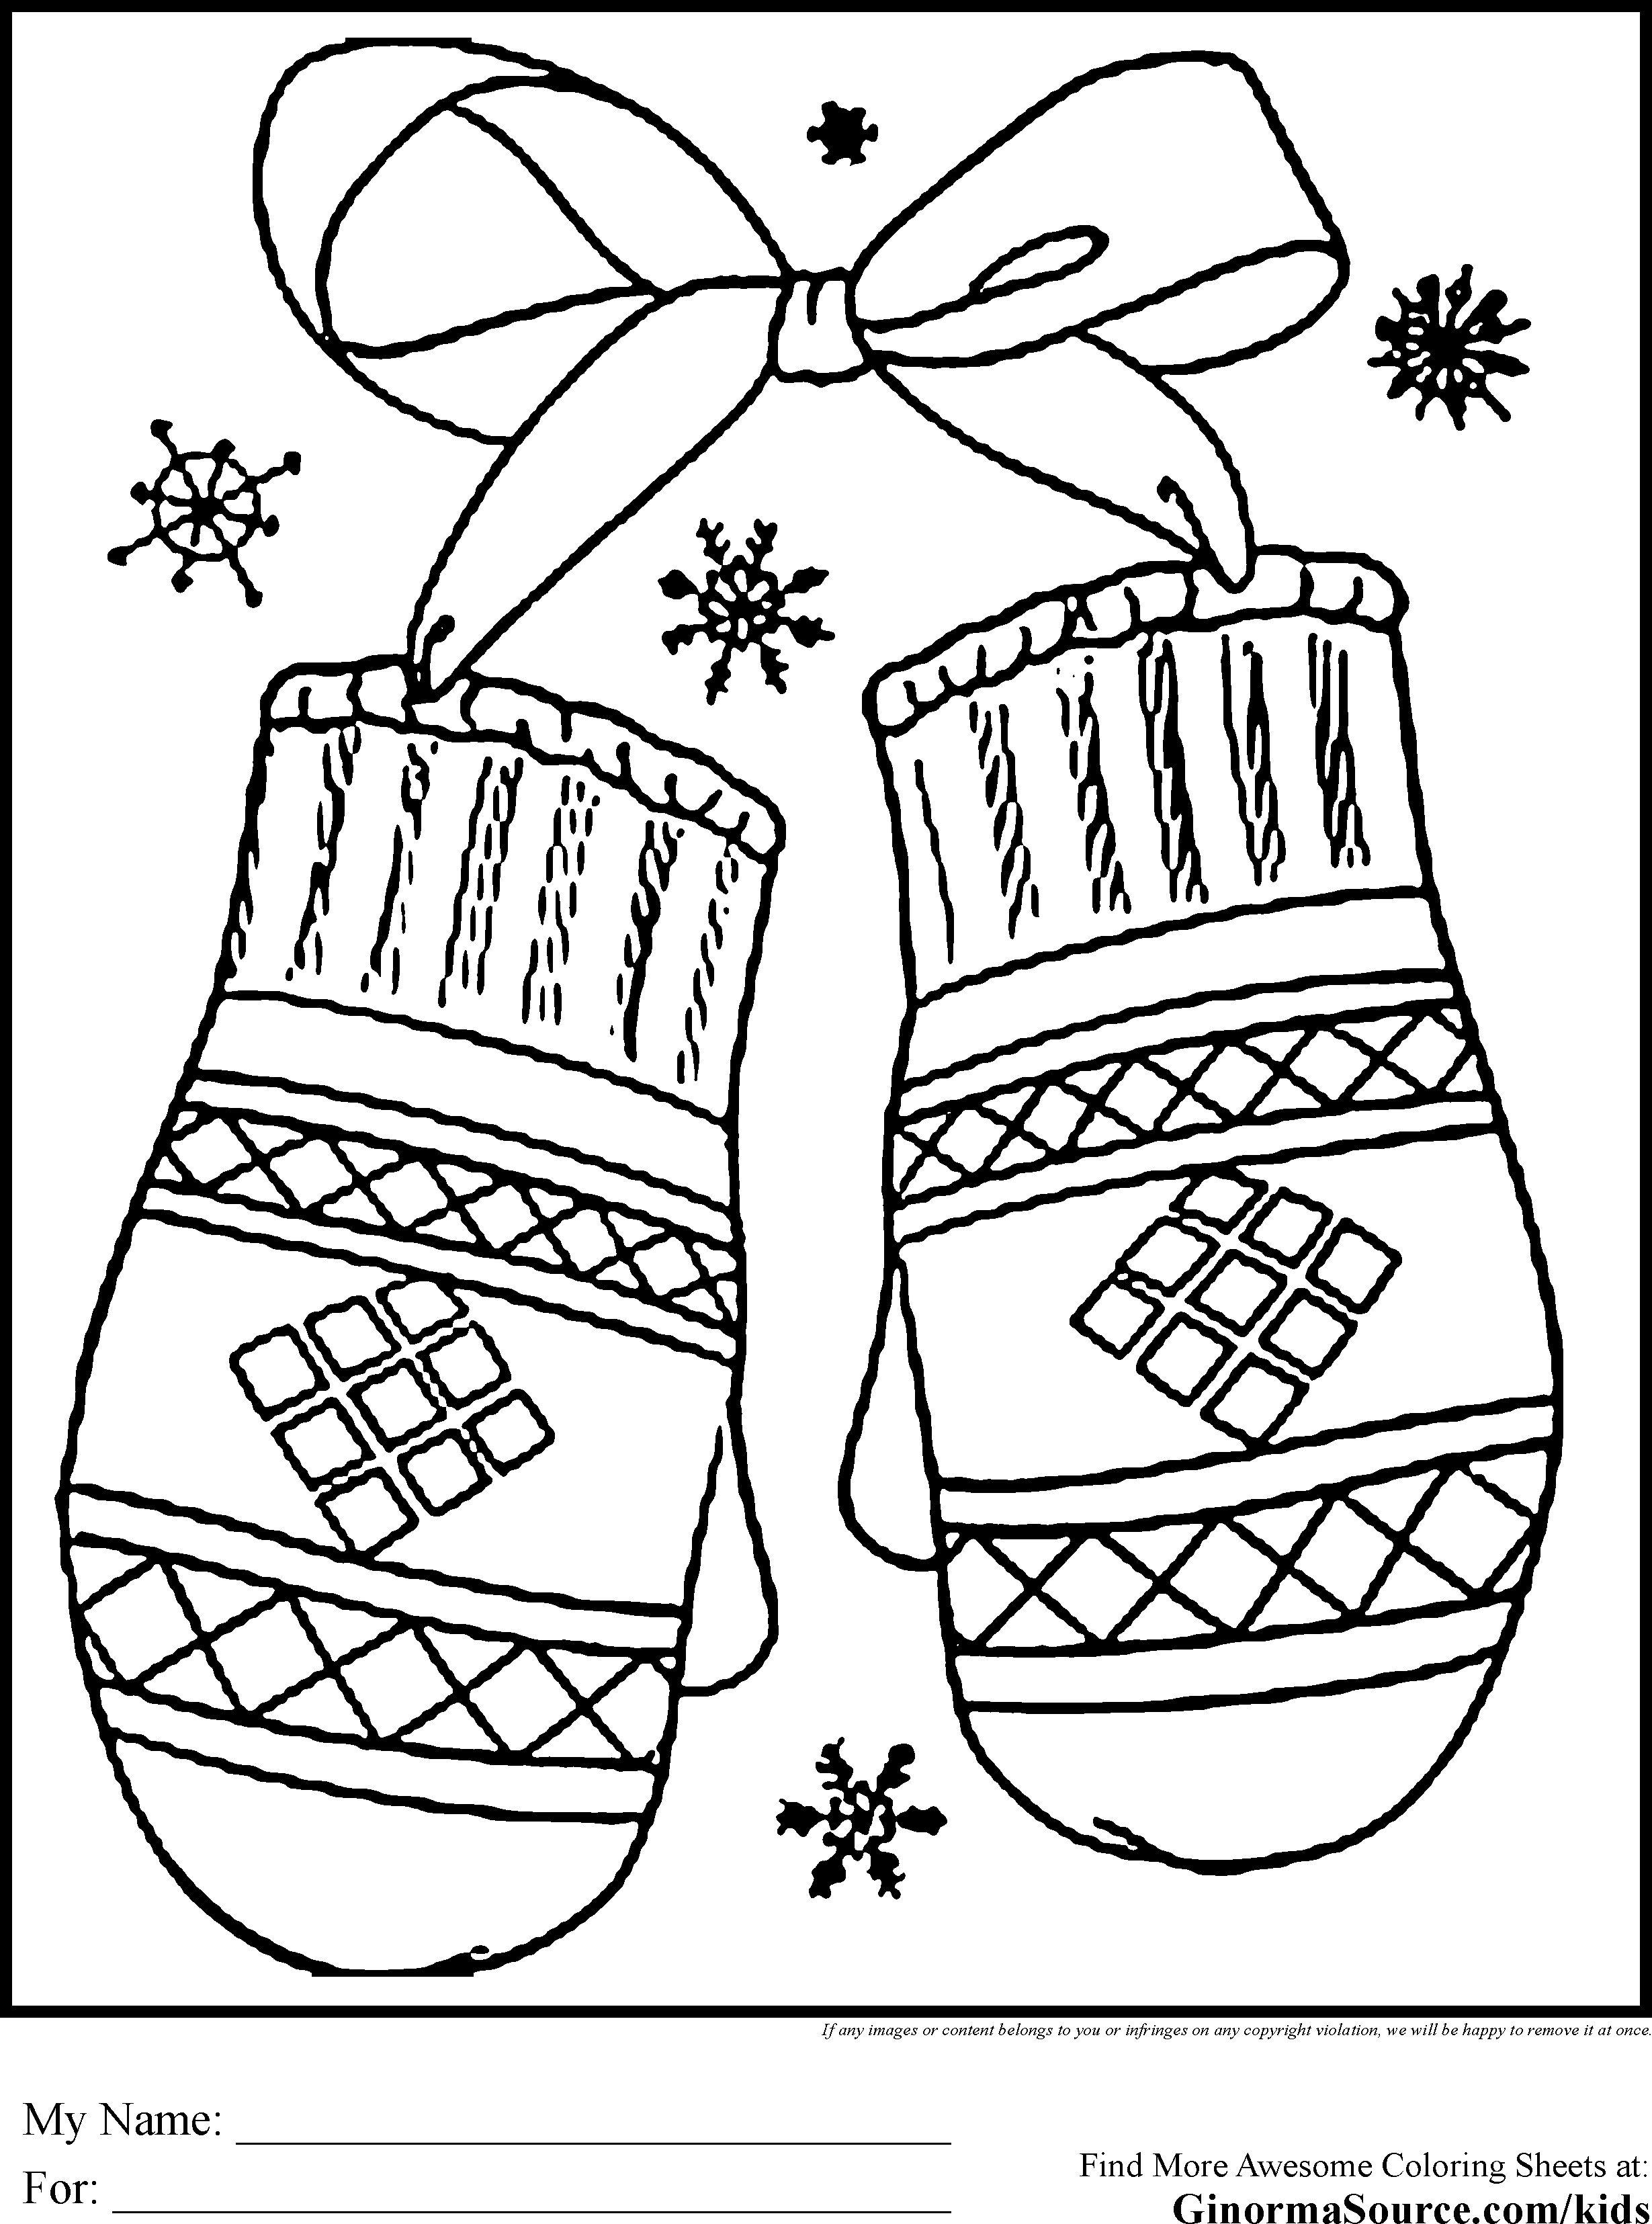 holiday-coloring-page-0025-q1